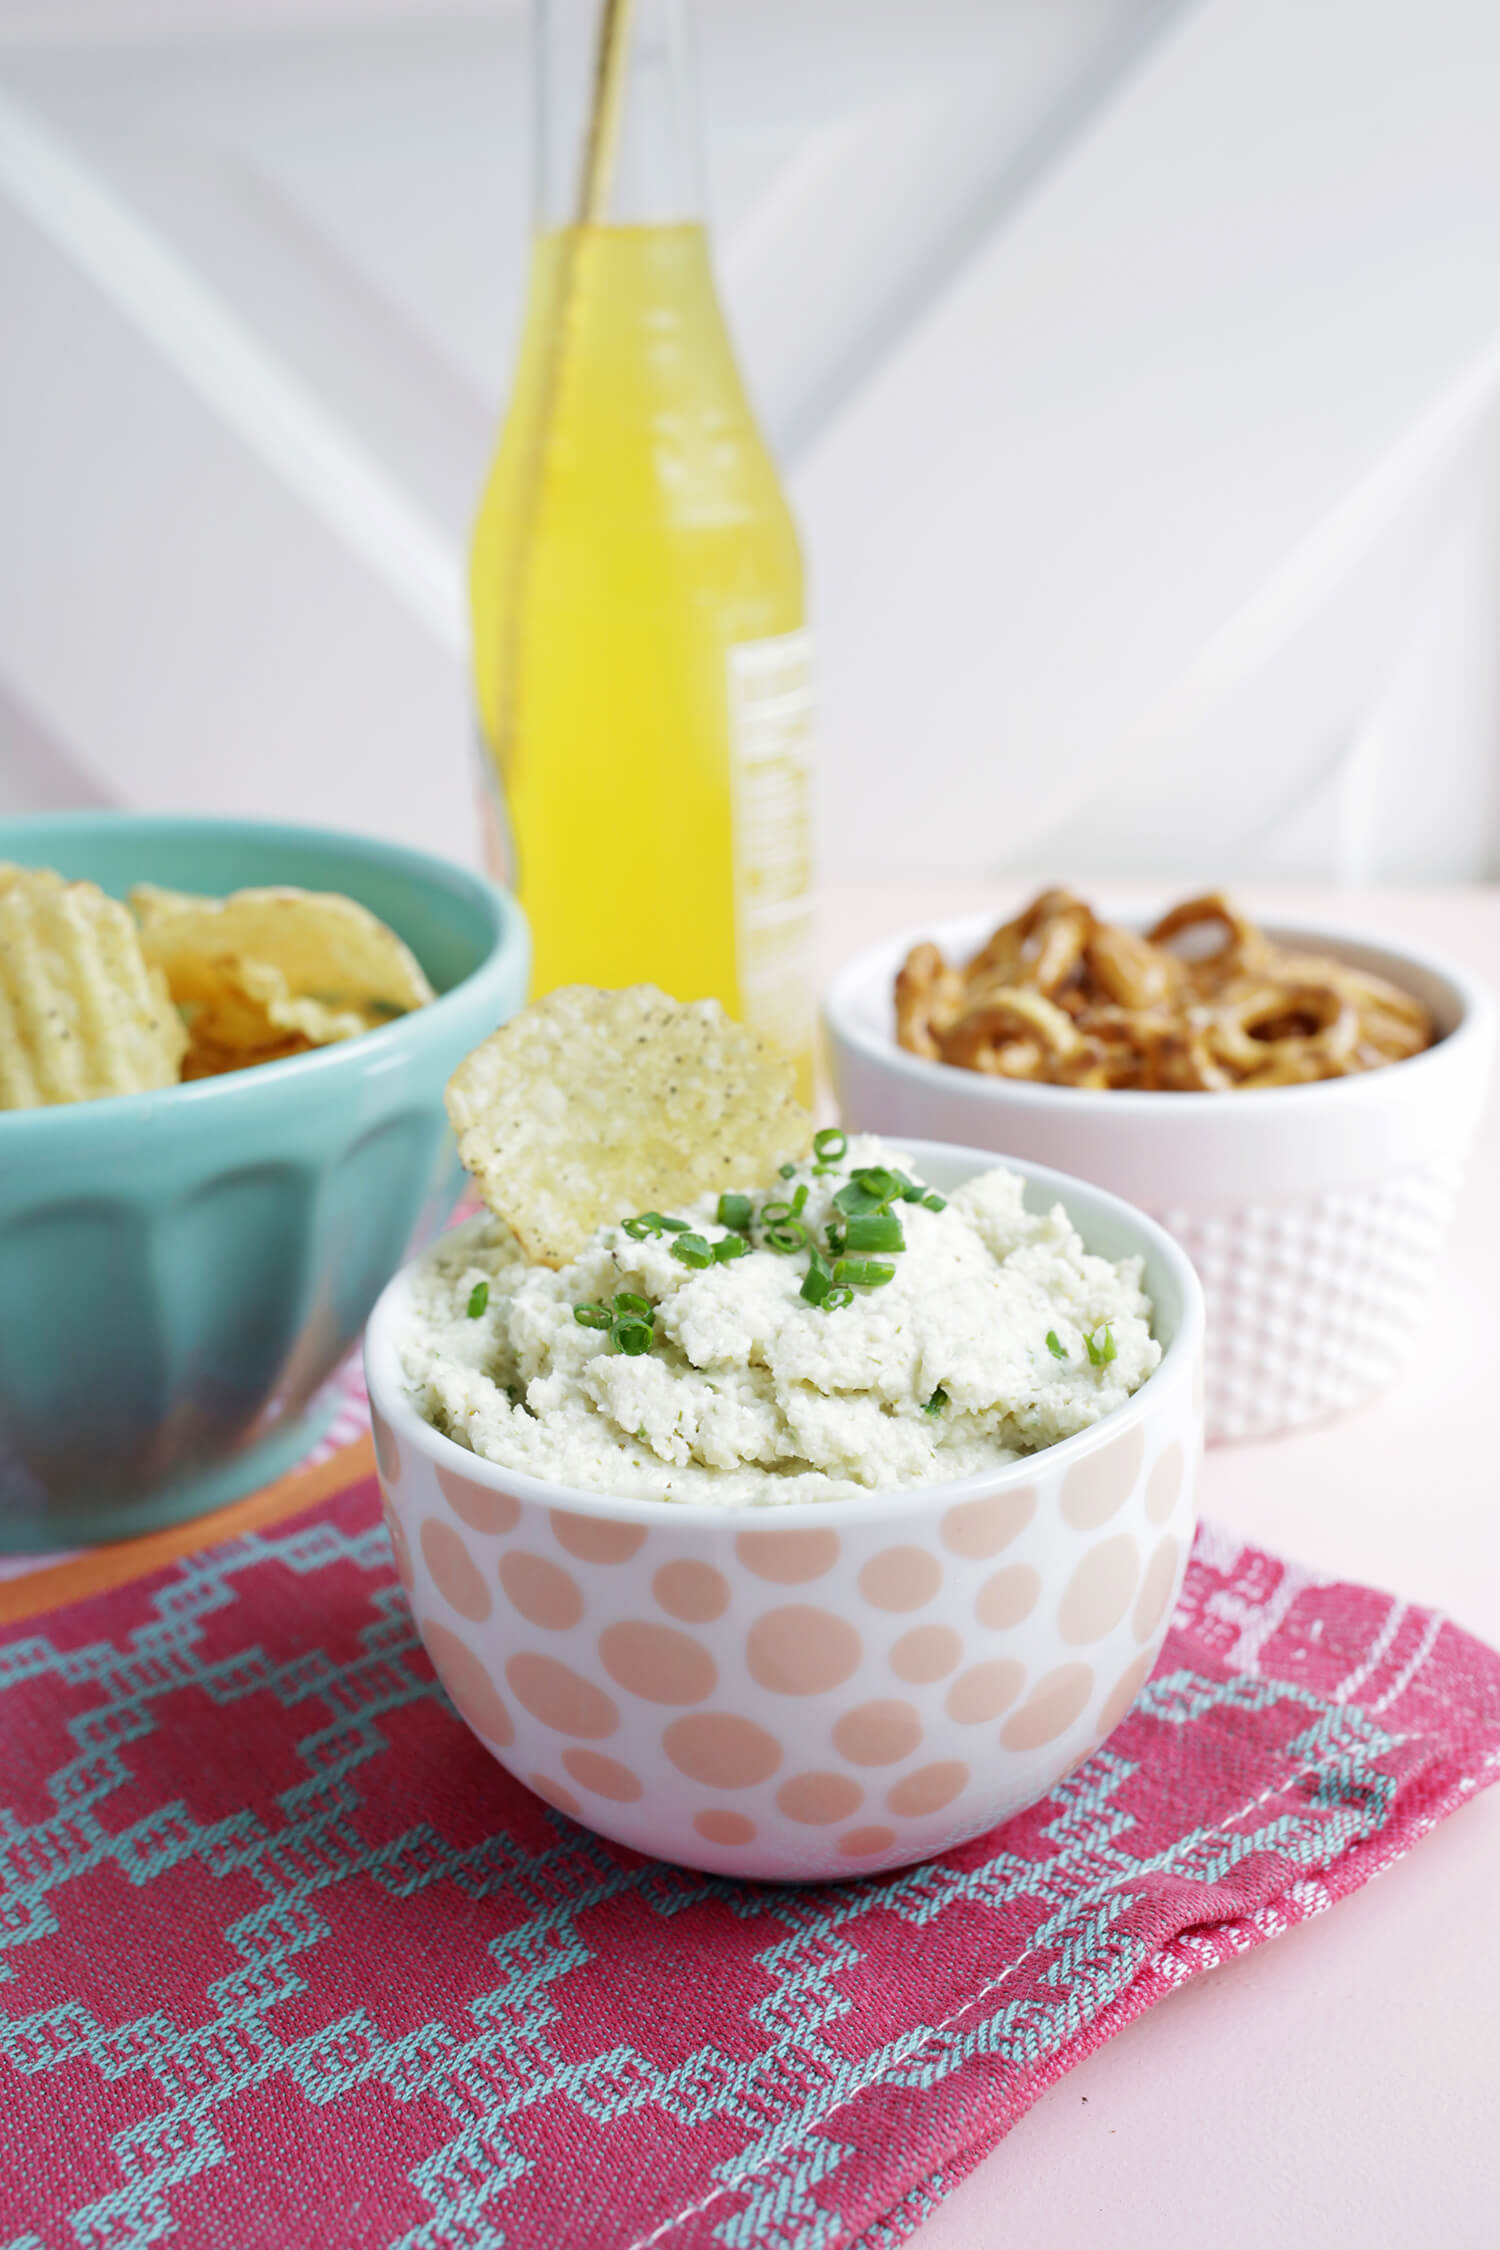 Truffle Chive Chip Dip